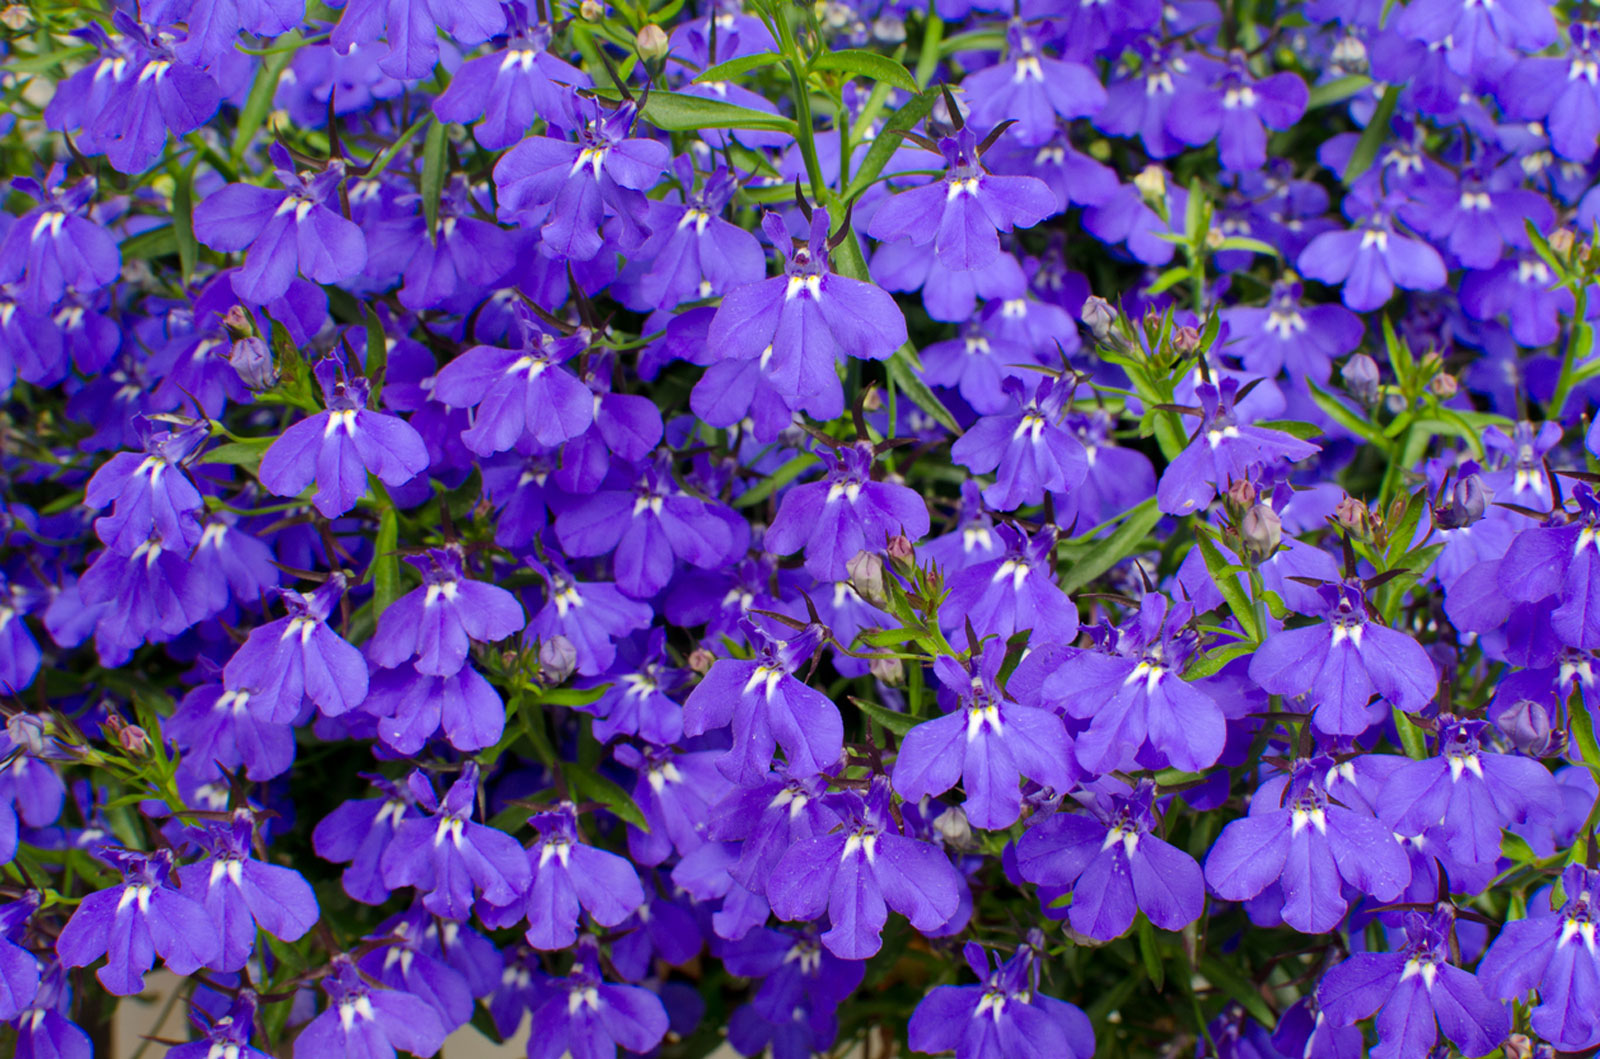 Growing Lobelia: Tips For Care Of Lobelia